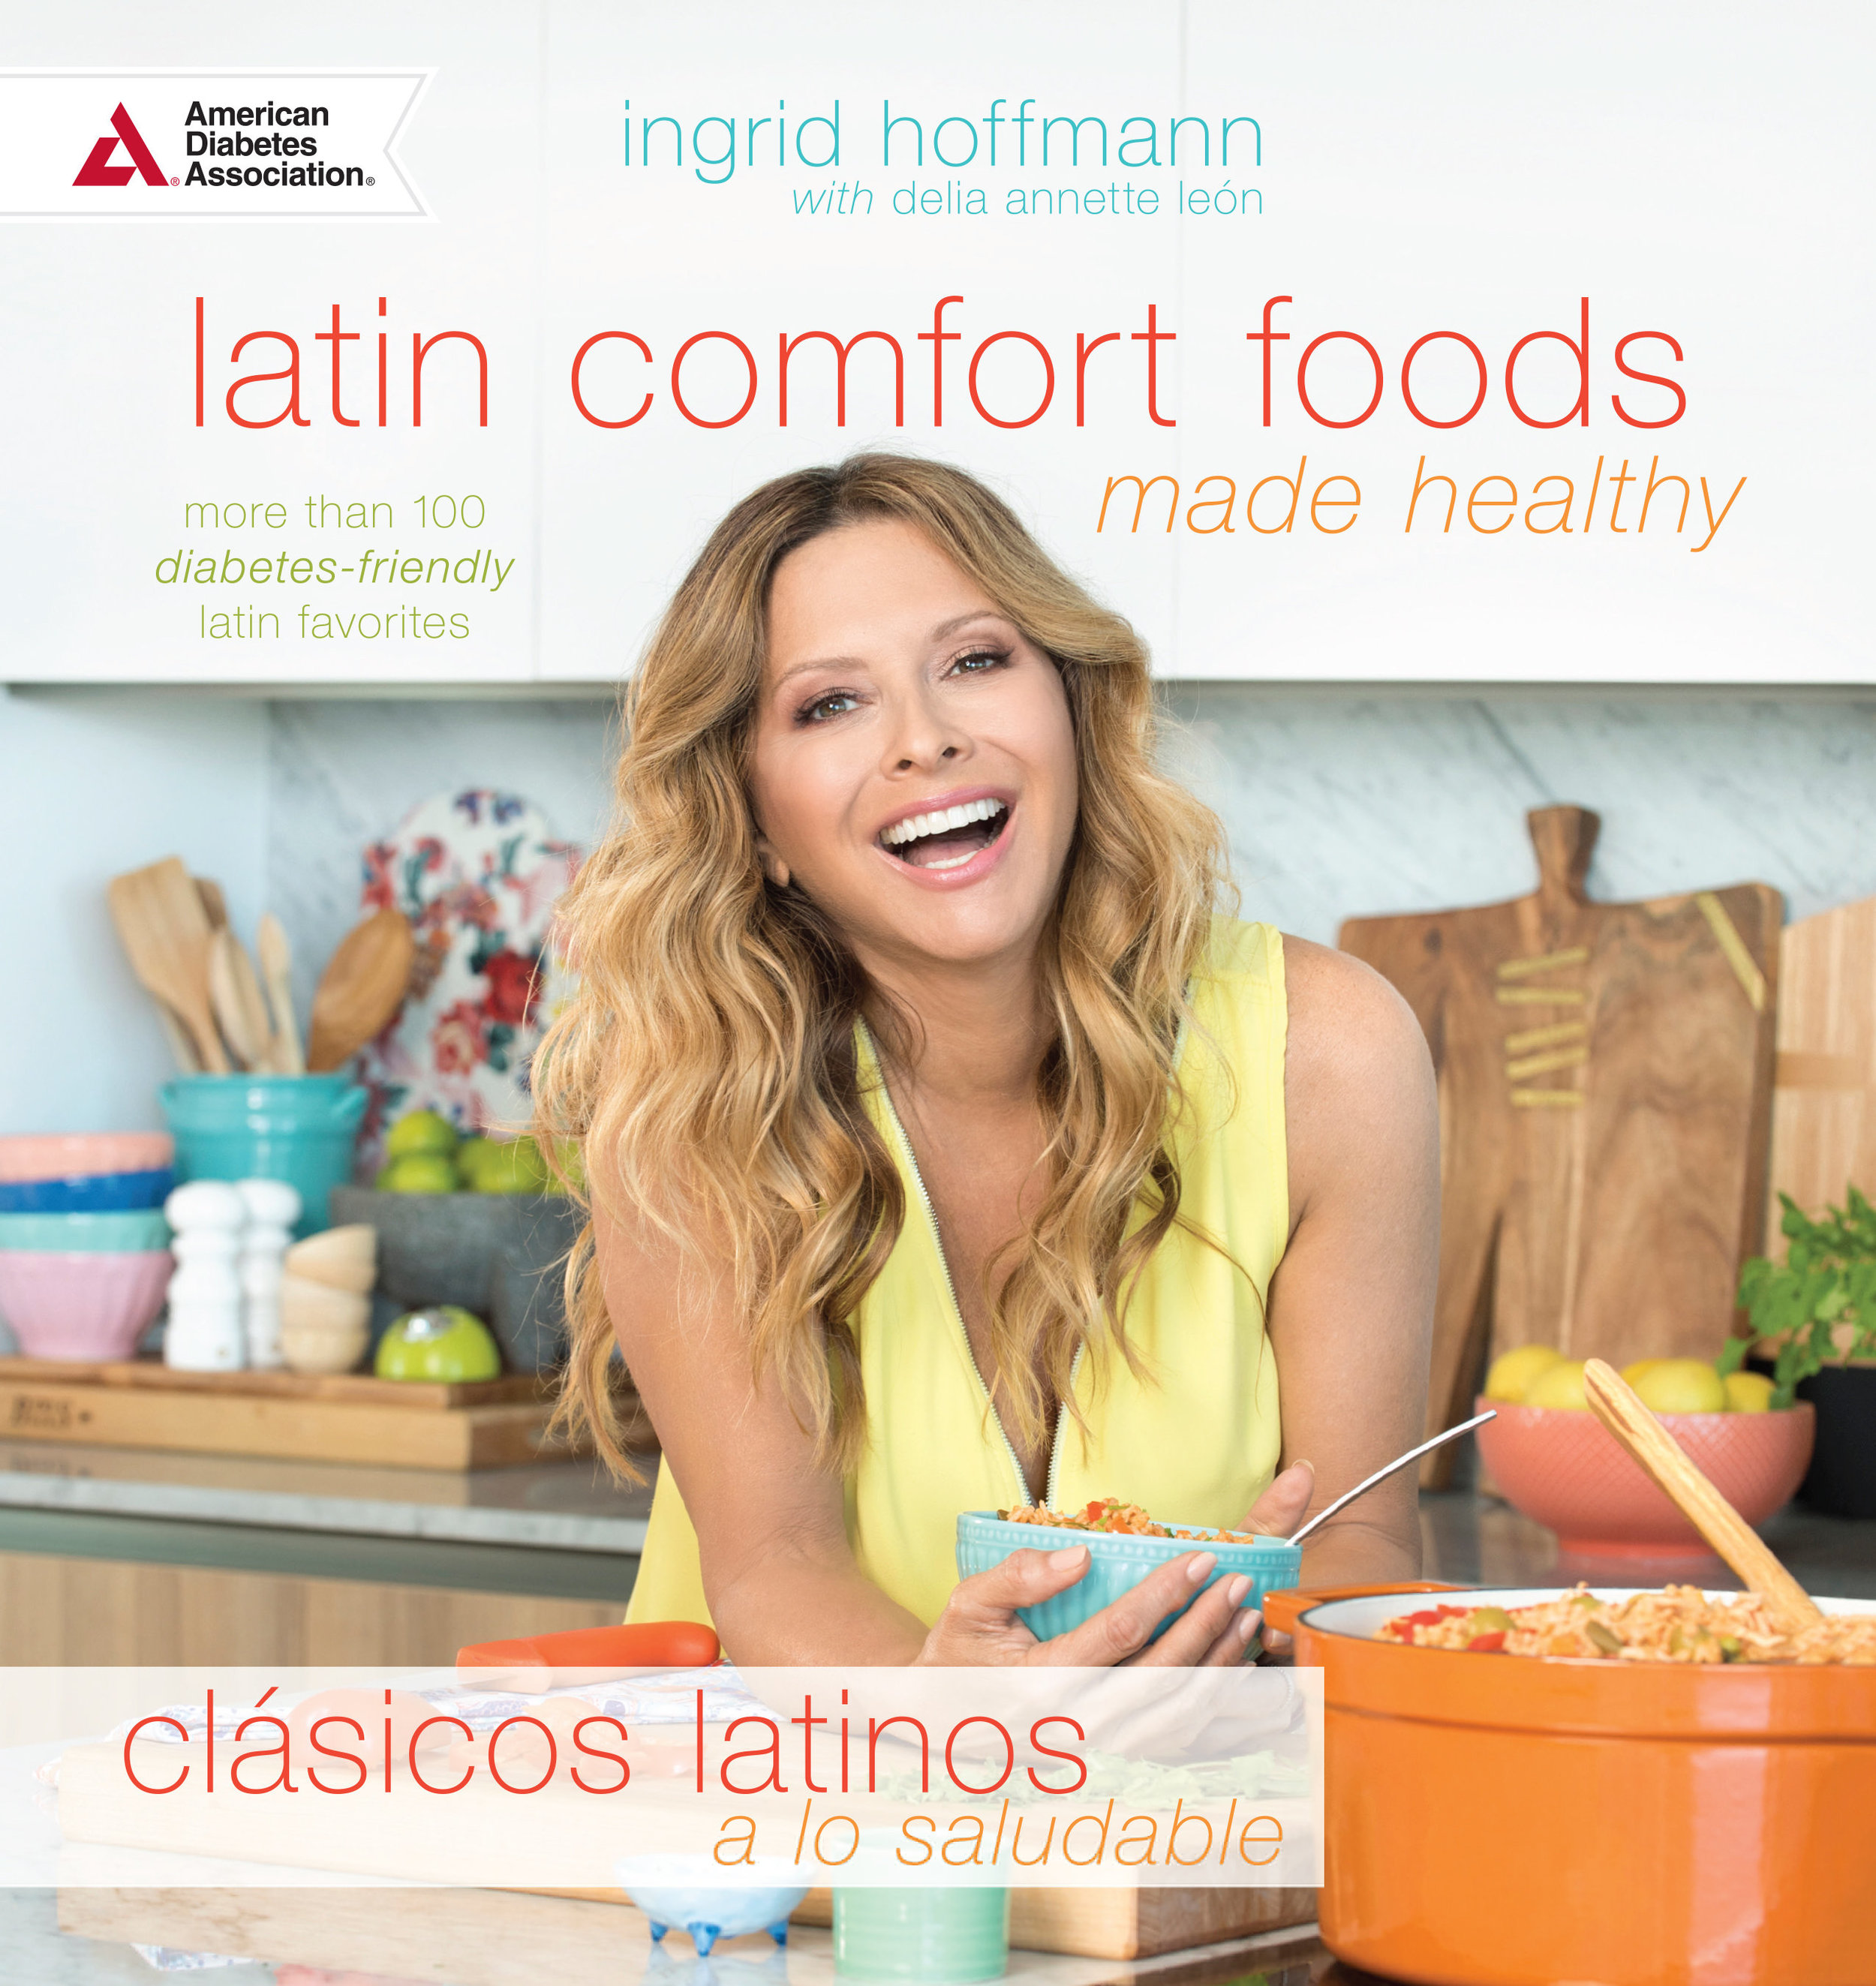 """Ingrid Hoffmann - Ingrid Hoffmann is the host of """"Top Chef Estrellas"""" (Telemundo, NBC), """"Simply Delicioso"""" (Cooking Channel) and """"Delicioso"""" (Univision). Ingrid is a frequent guest of shows like Un Nuevo Día, The Talk, Oprah, Martha Stewart, The View, The Today Show, The Early Show and The Wendy Williams Show. She partnered with the American Diabetes Association (ADA) to write a new cookbook called, """"Latin Comfort Foods Made Healthy: More Than 100 Diabetes-Friendly Latin Favorites."""" She is also the author of"""